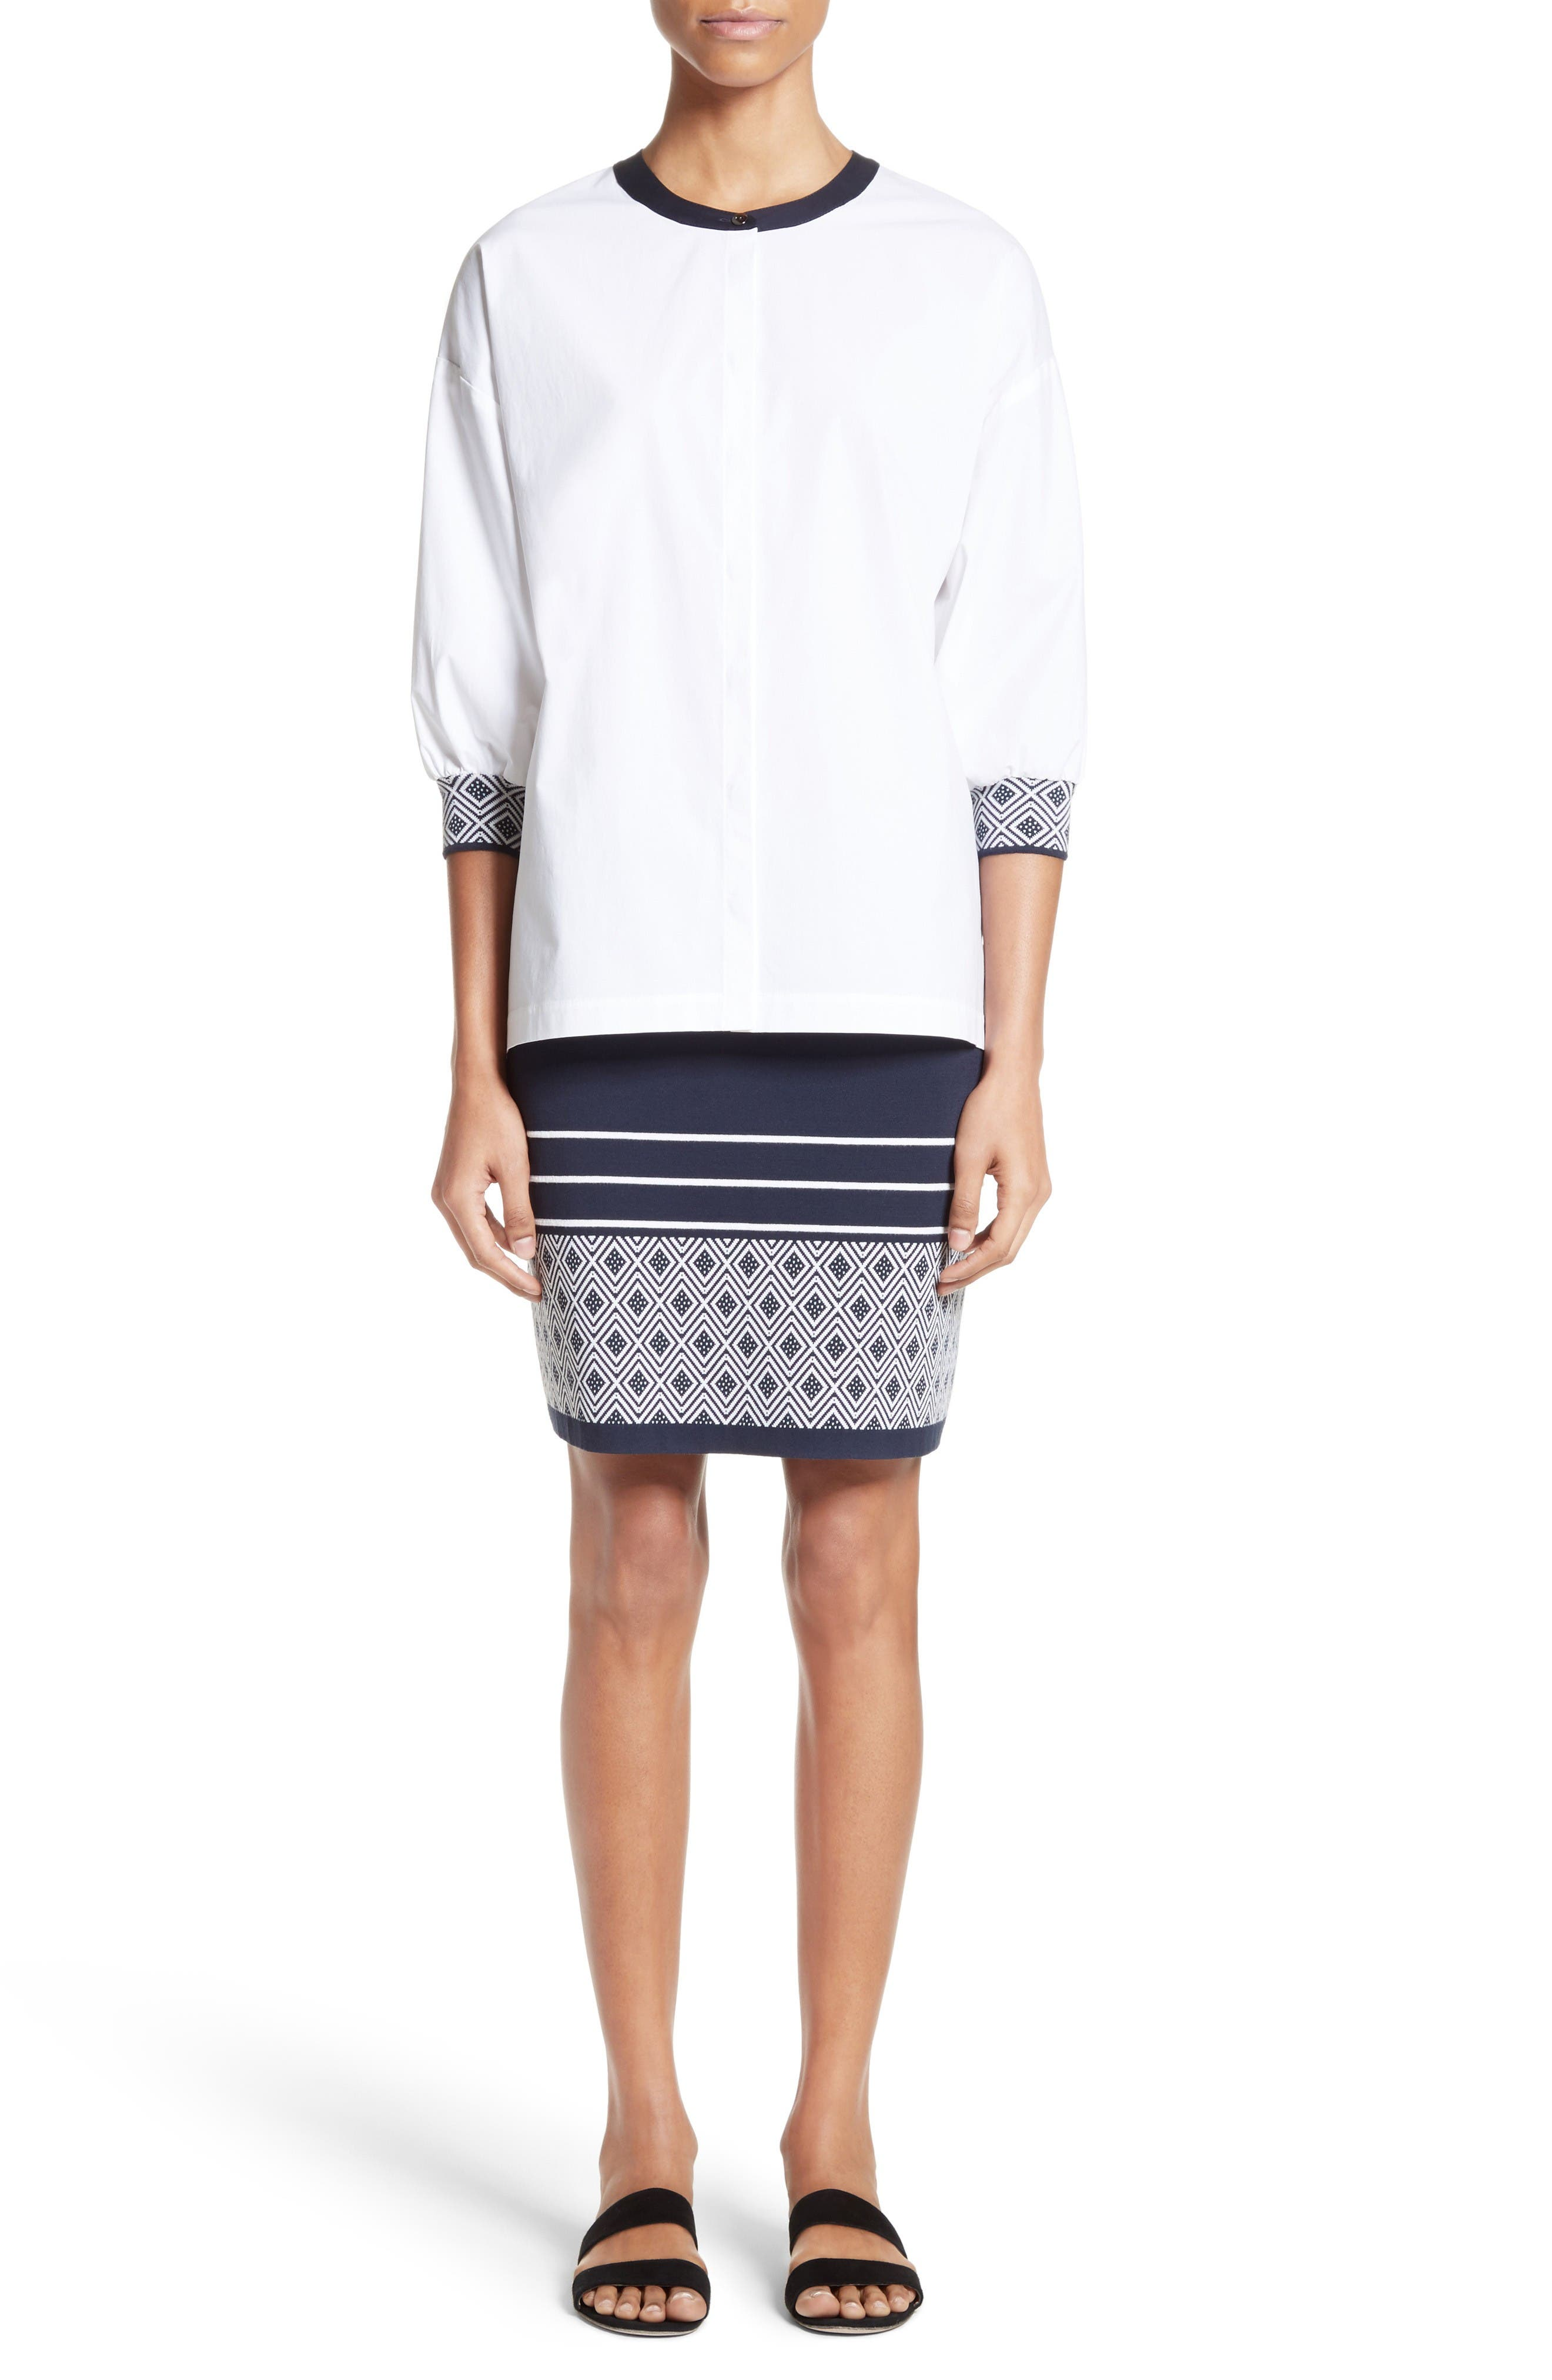 St. John Collection Shirt & Skirt Outfit with Accessories